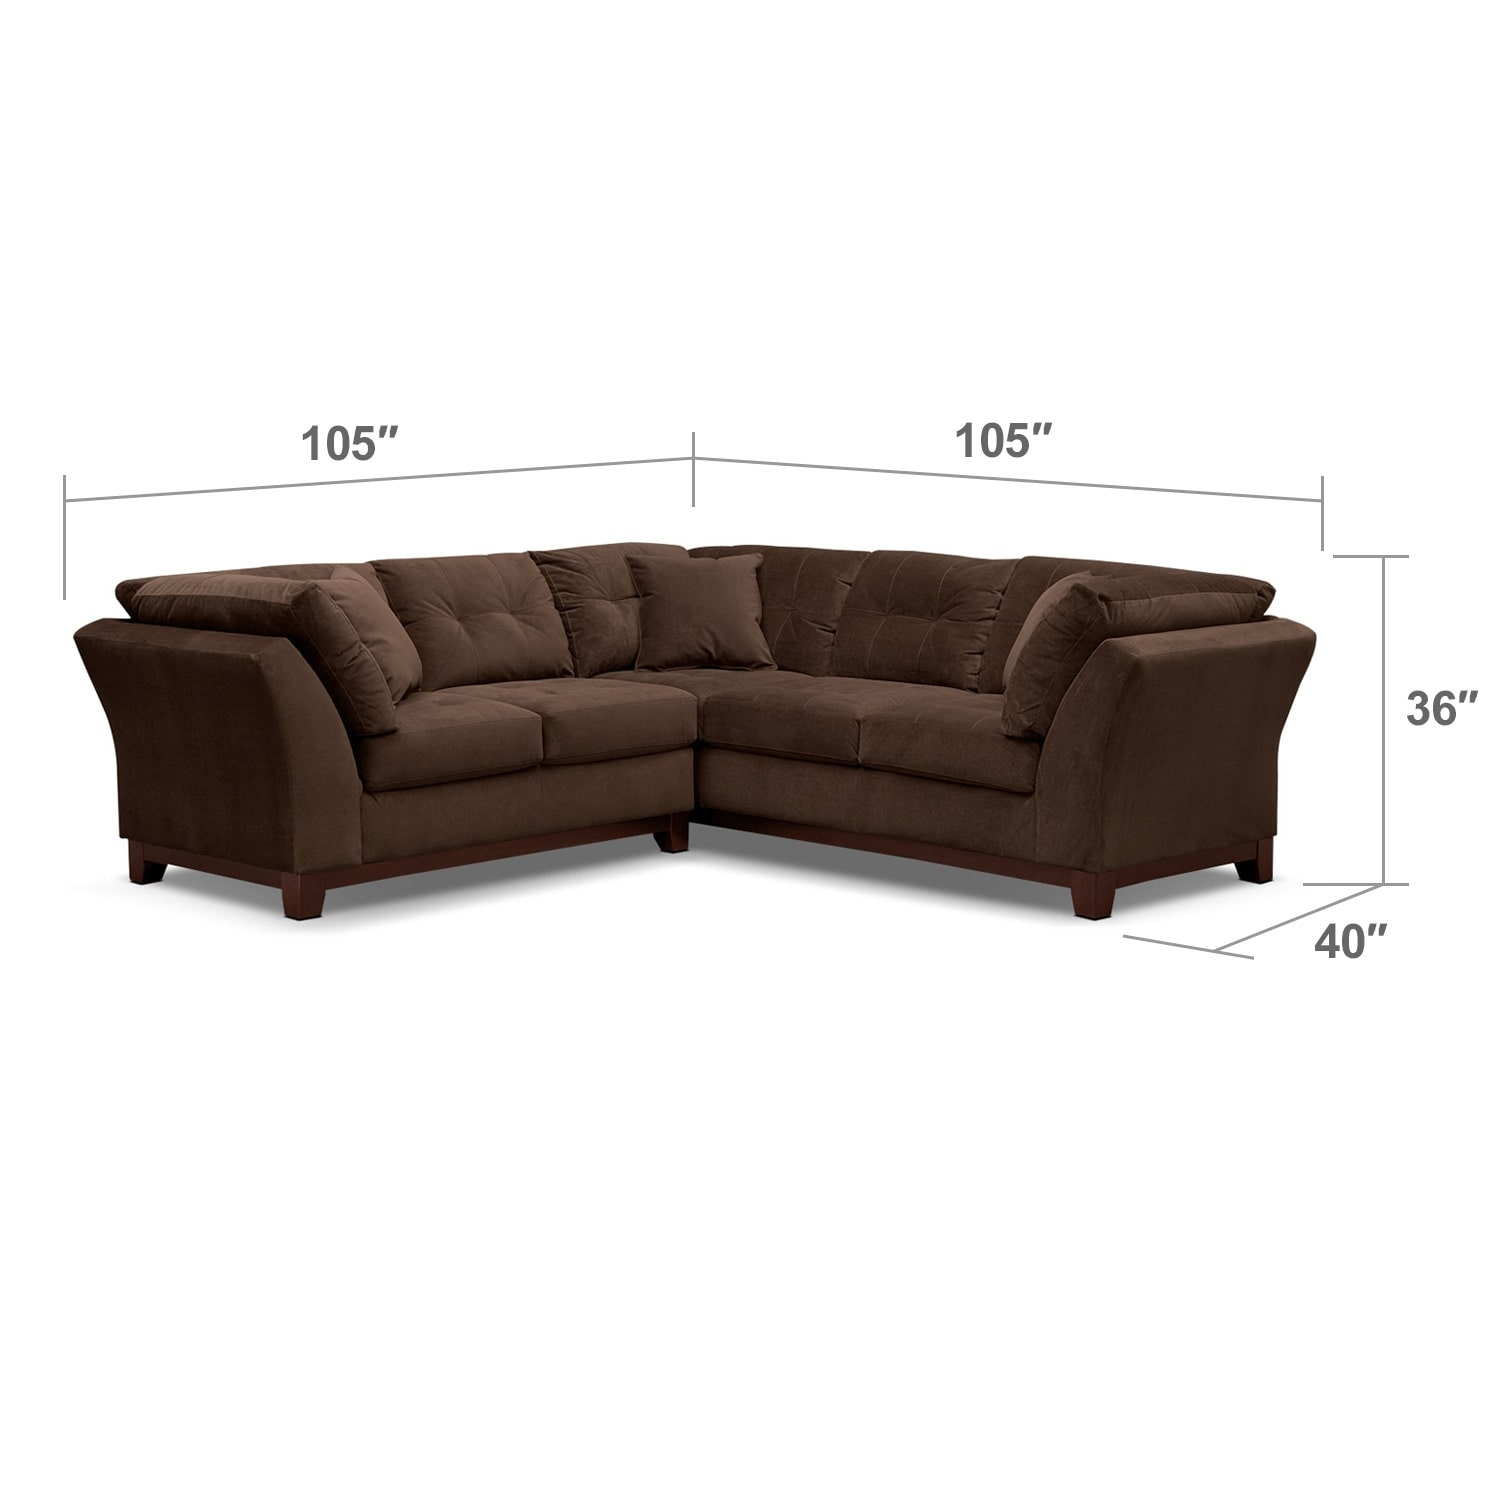 """Living Room Furniture - Solace 2-Piece Right-Facing 105"""" Sofa Sectional - Chocolate"""